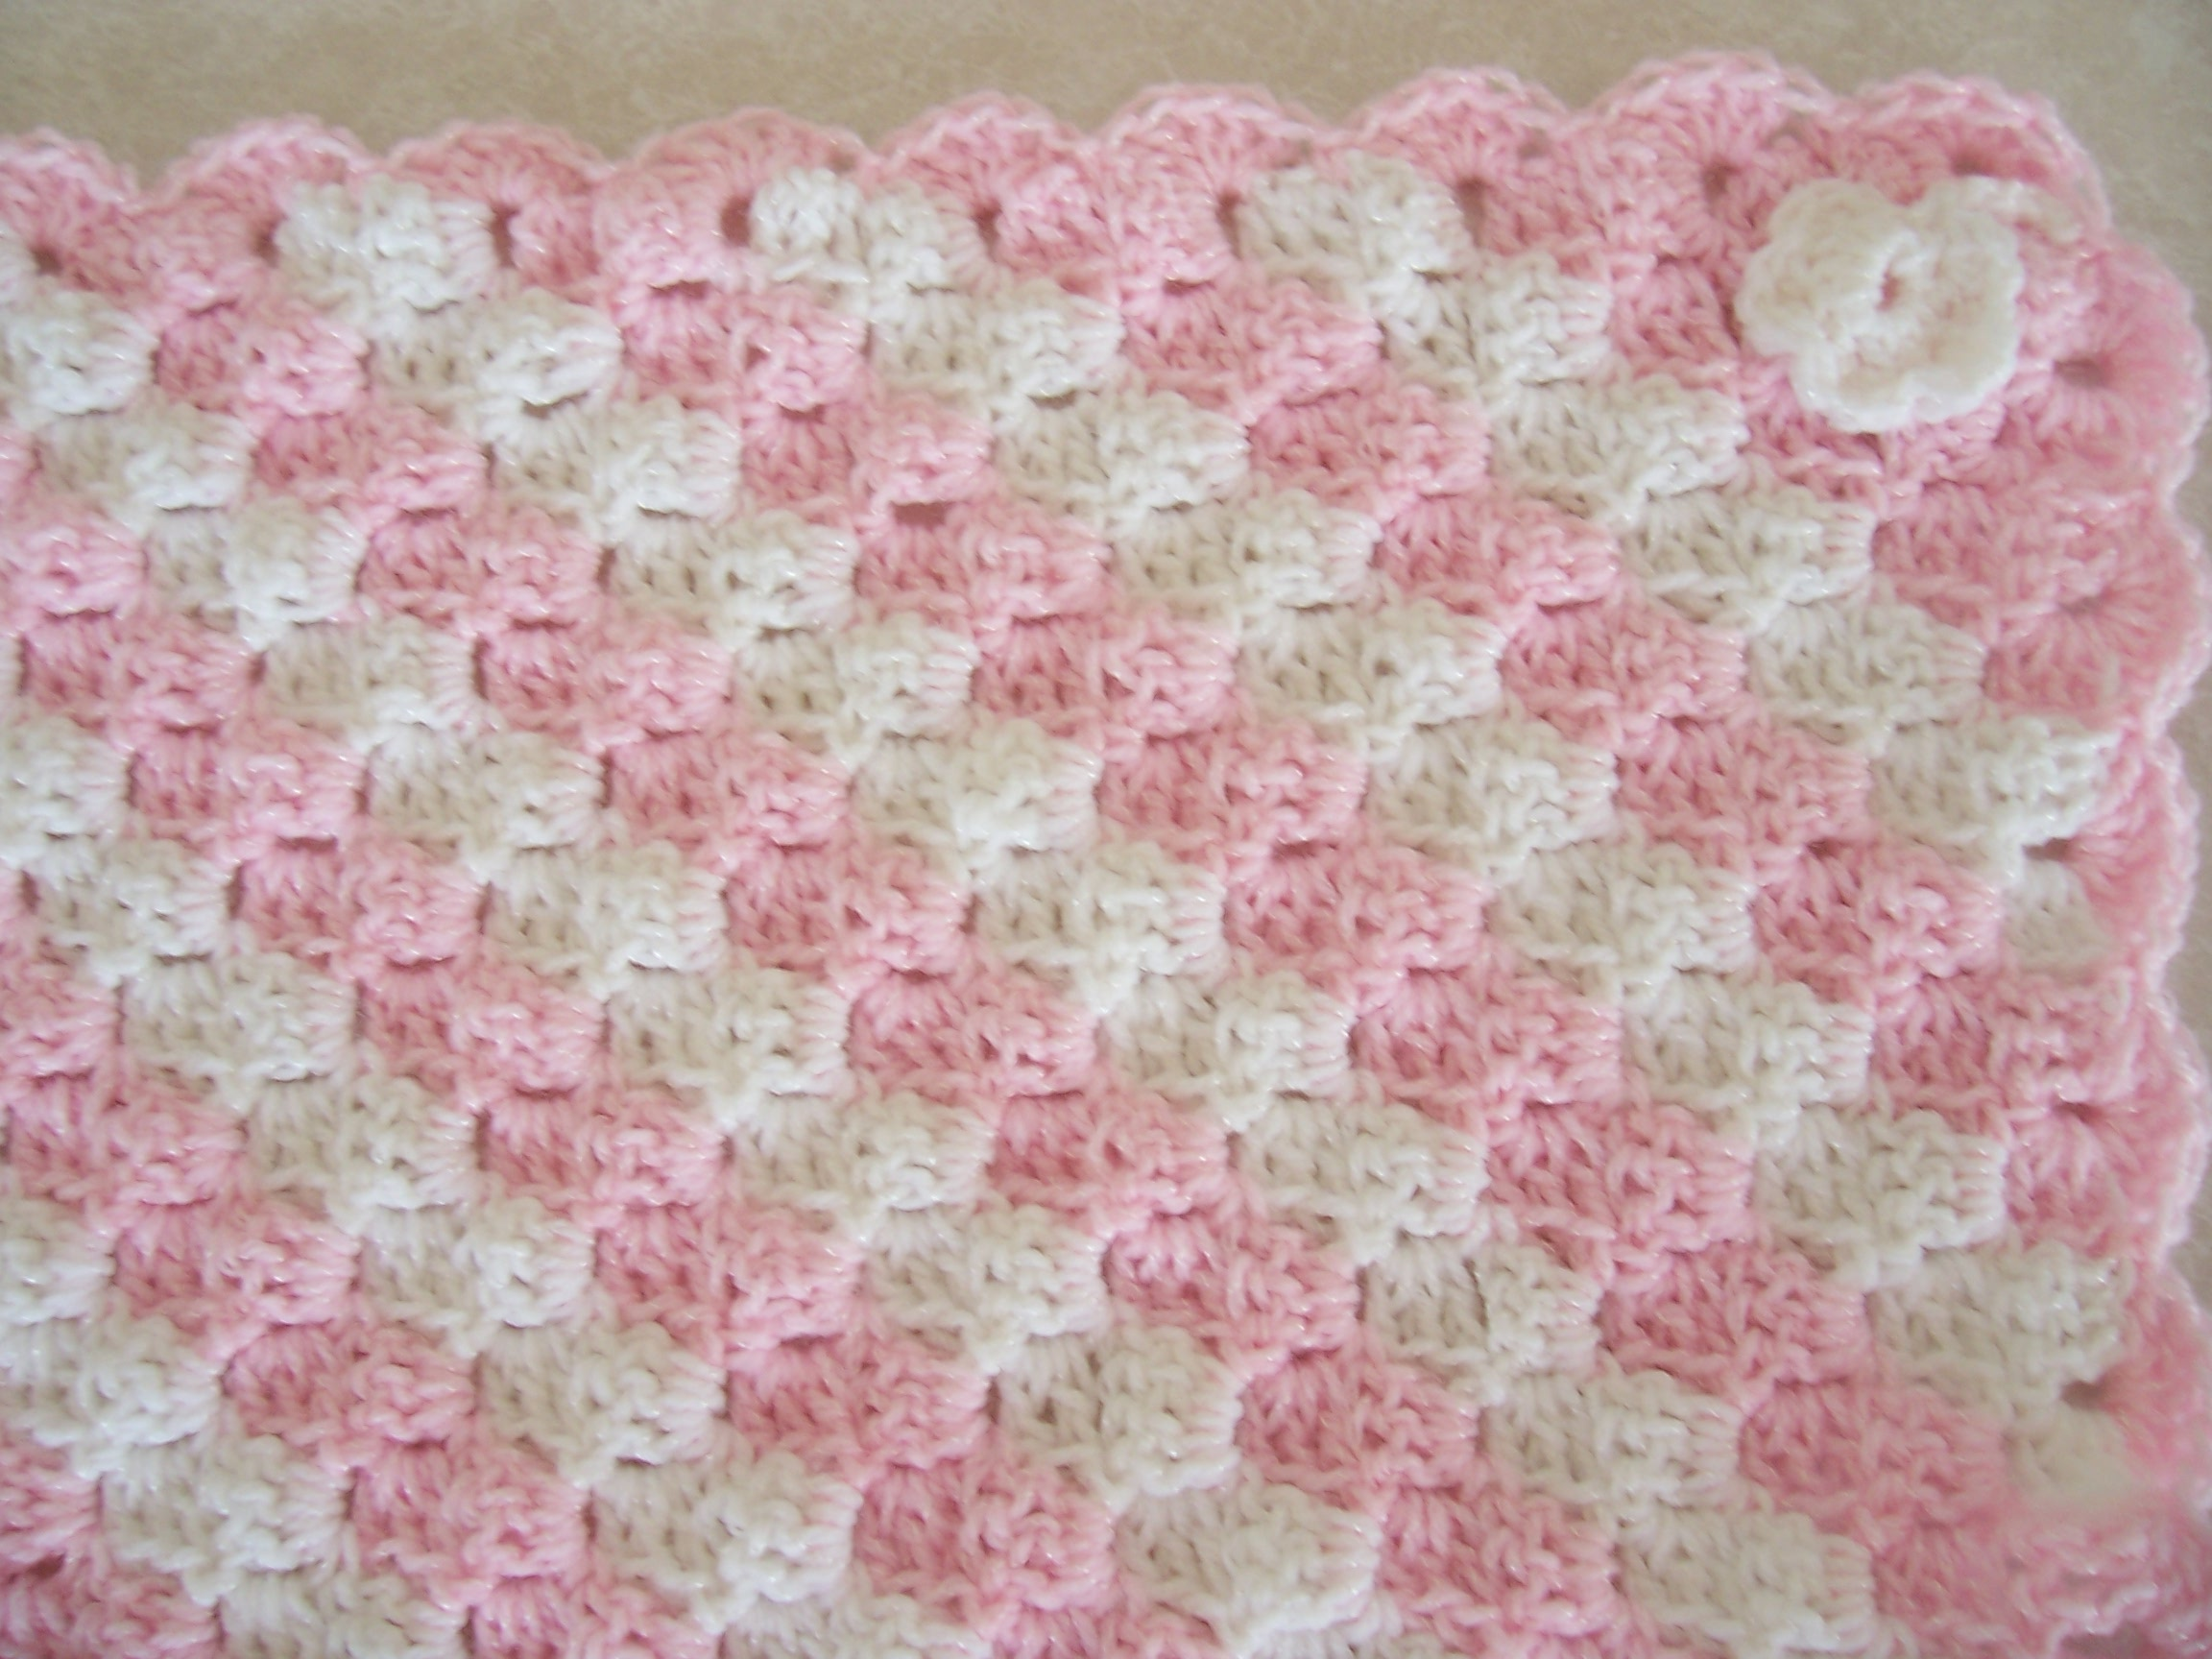 Crochet Blanket Patterns Free Baby : AFGHAN CROCHET PATTERN PINK WHITE FREE PATTERNS